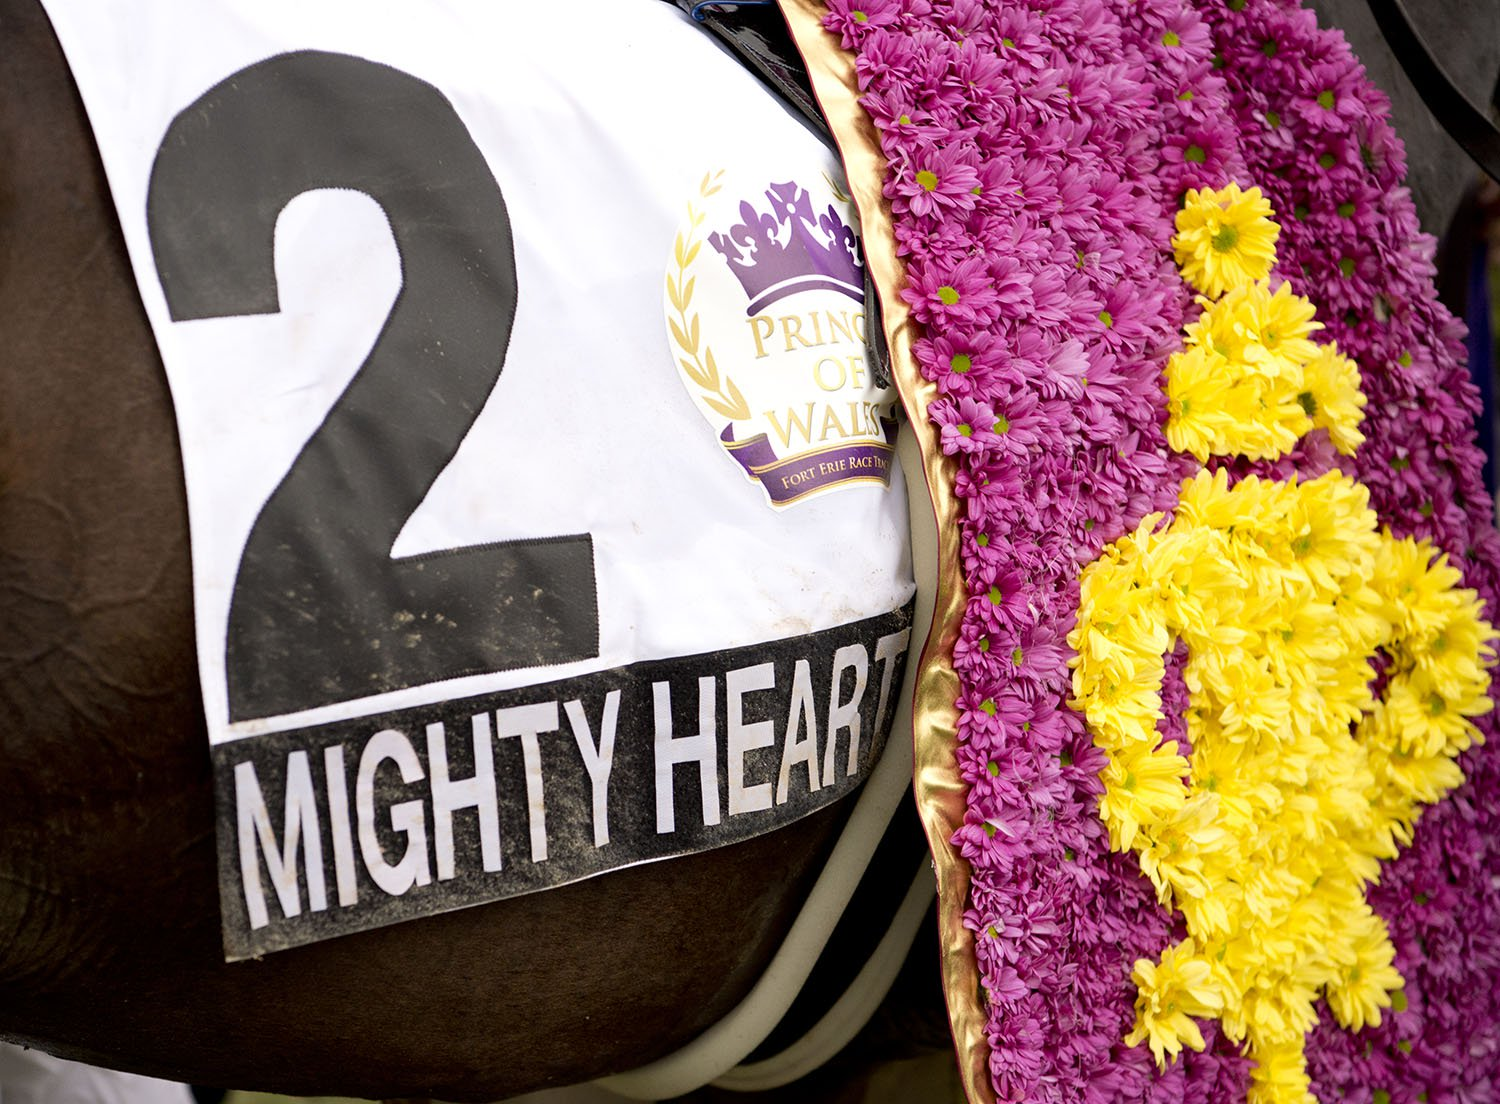 A close up view of Mighty Heart wearing the Prince of Wales floral stole created by The Monarch Florists. (Michael Burns Photo)